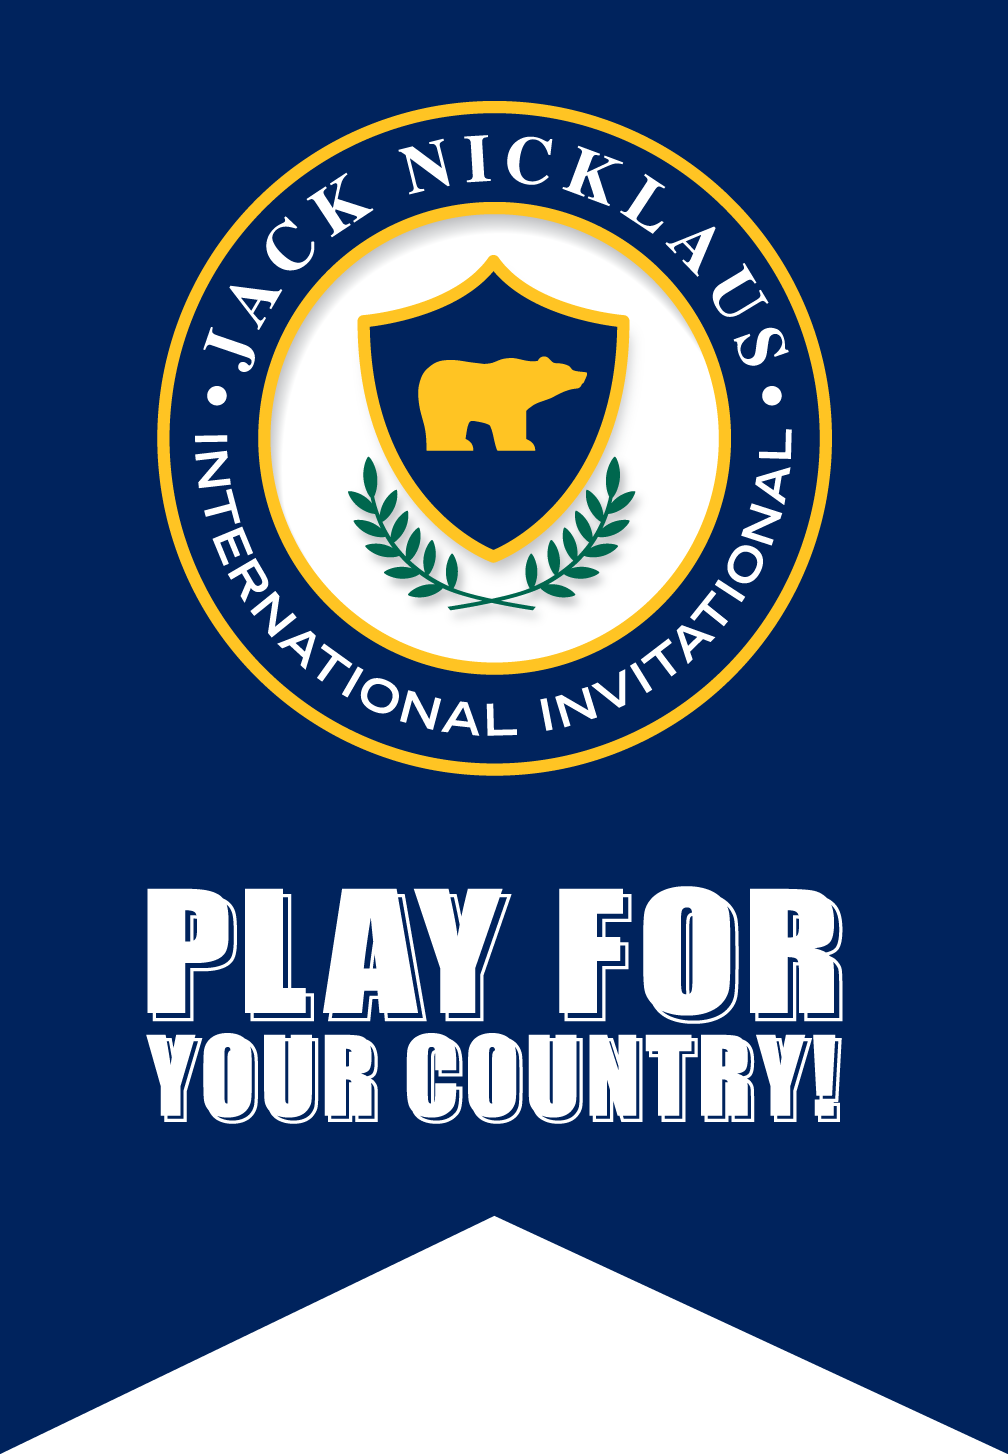 Jack Nicklaus International Invitational